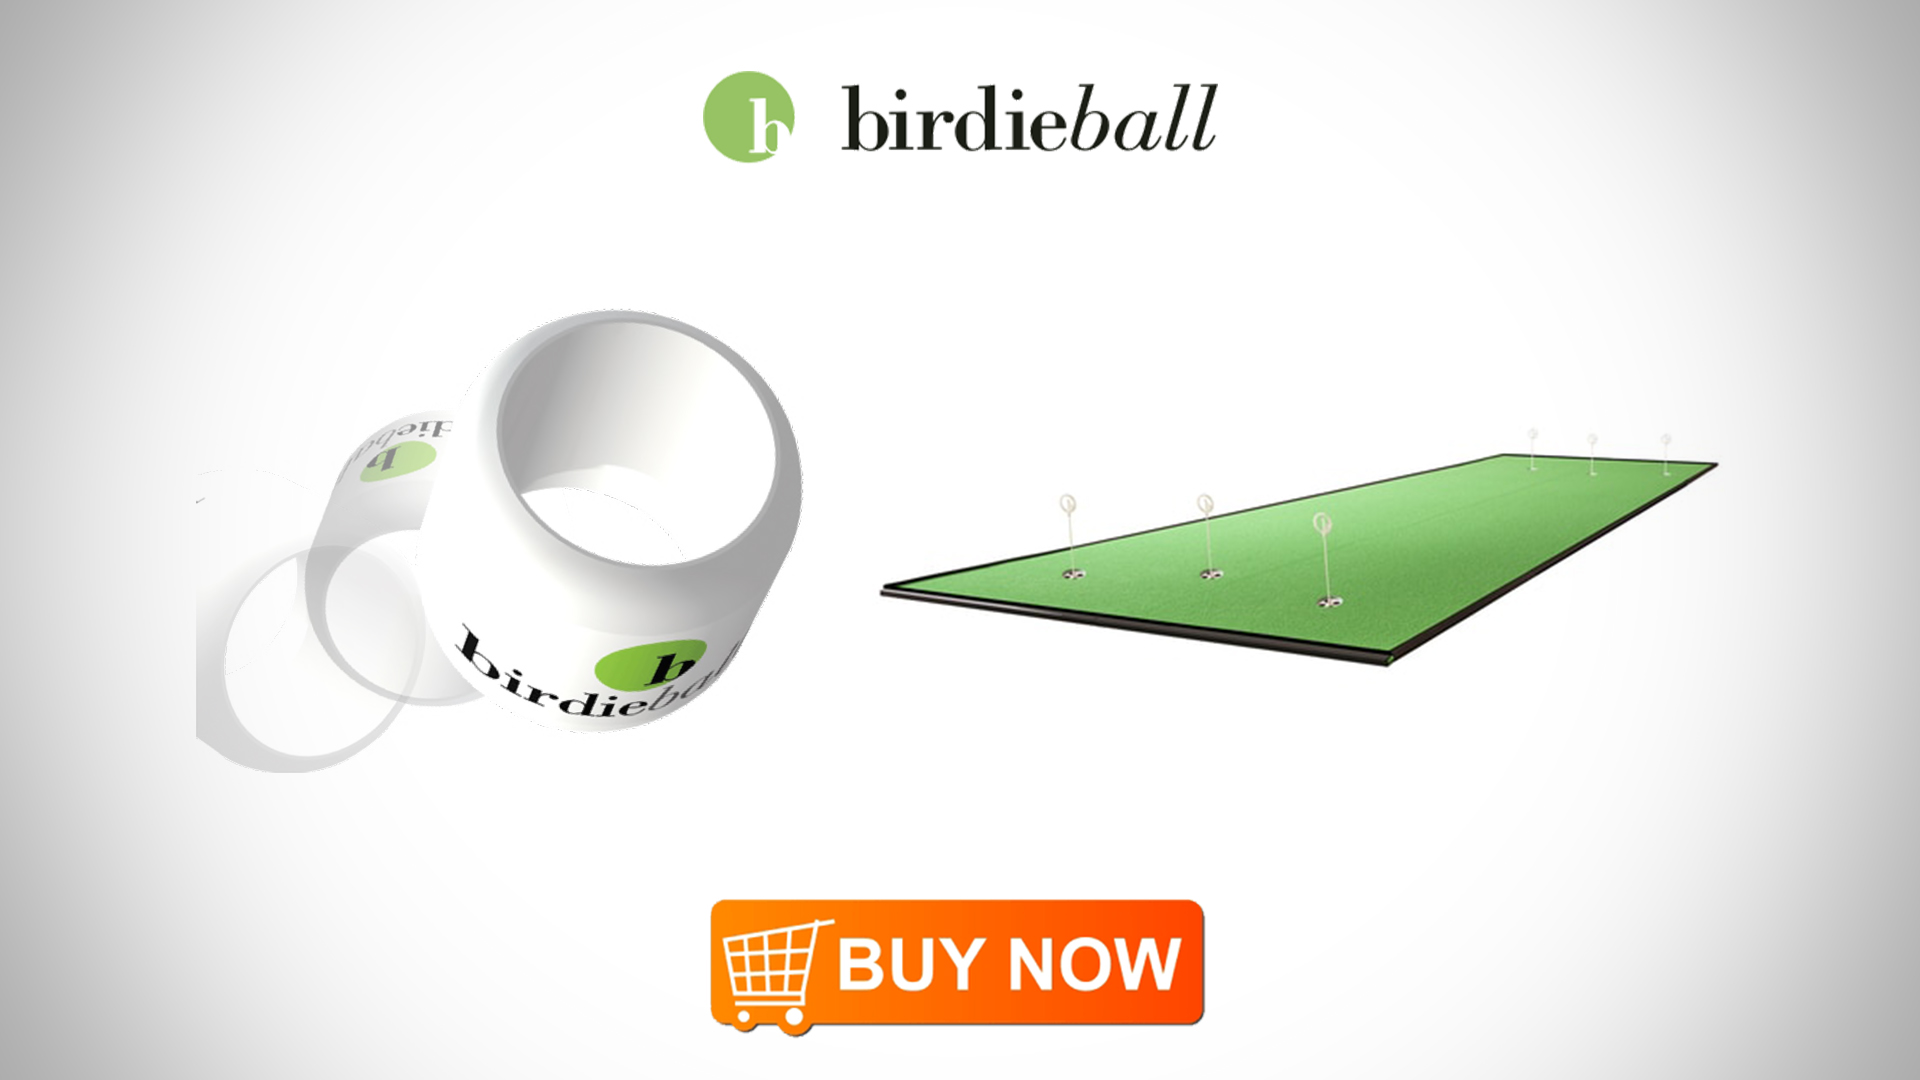 G&G_product_BUY NOW-birdieball.jpg